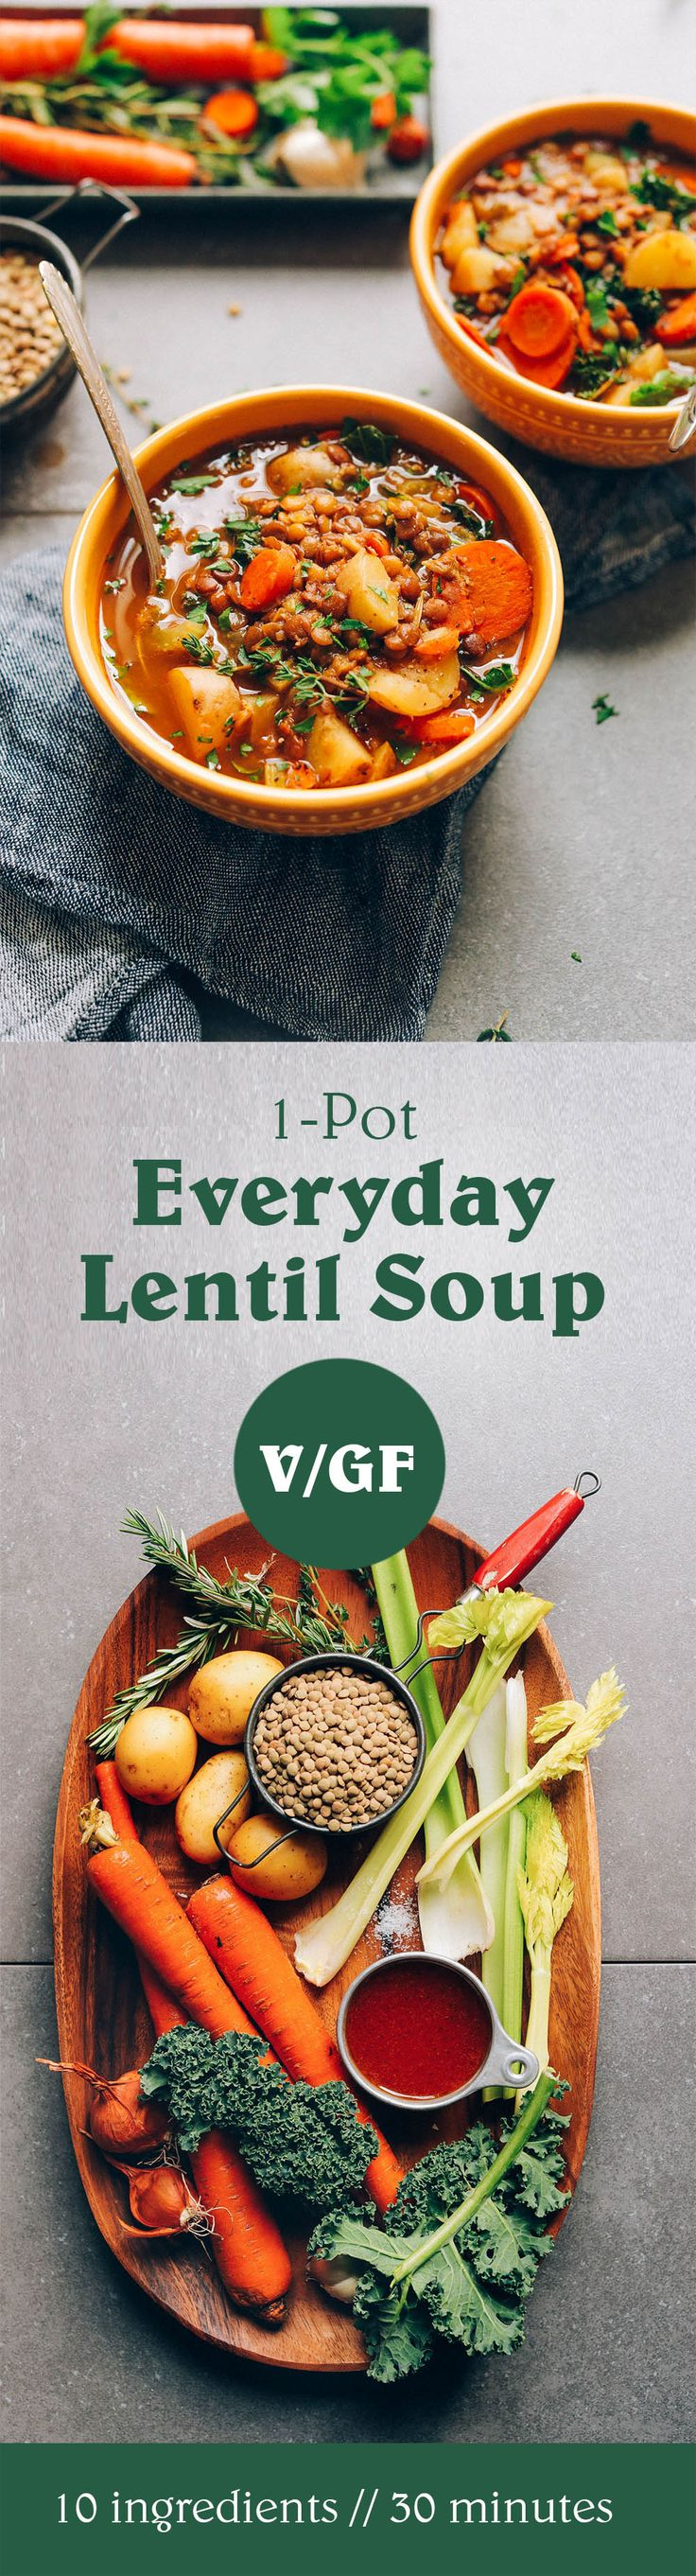 Everyday Lentil Soup. #vegan #plantbased